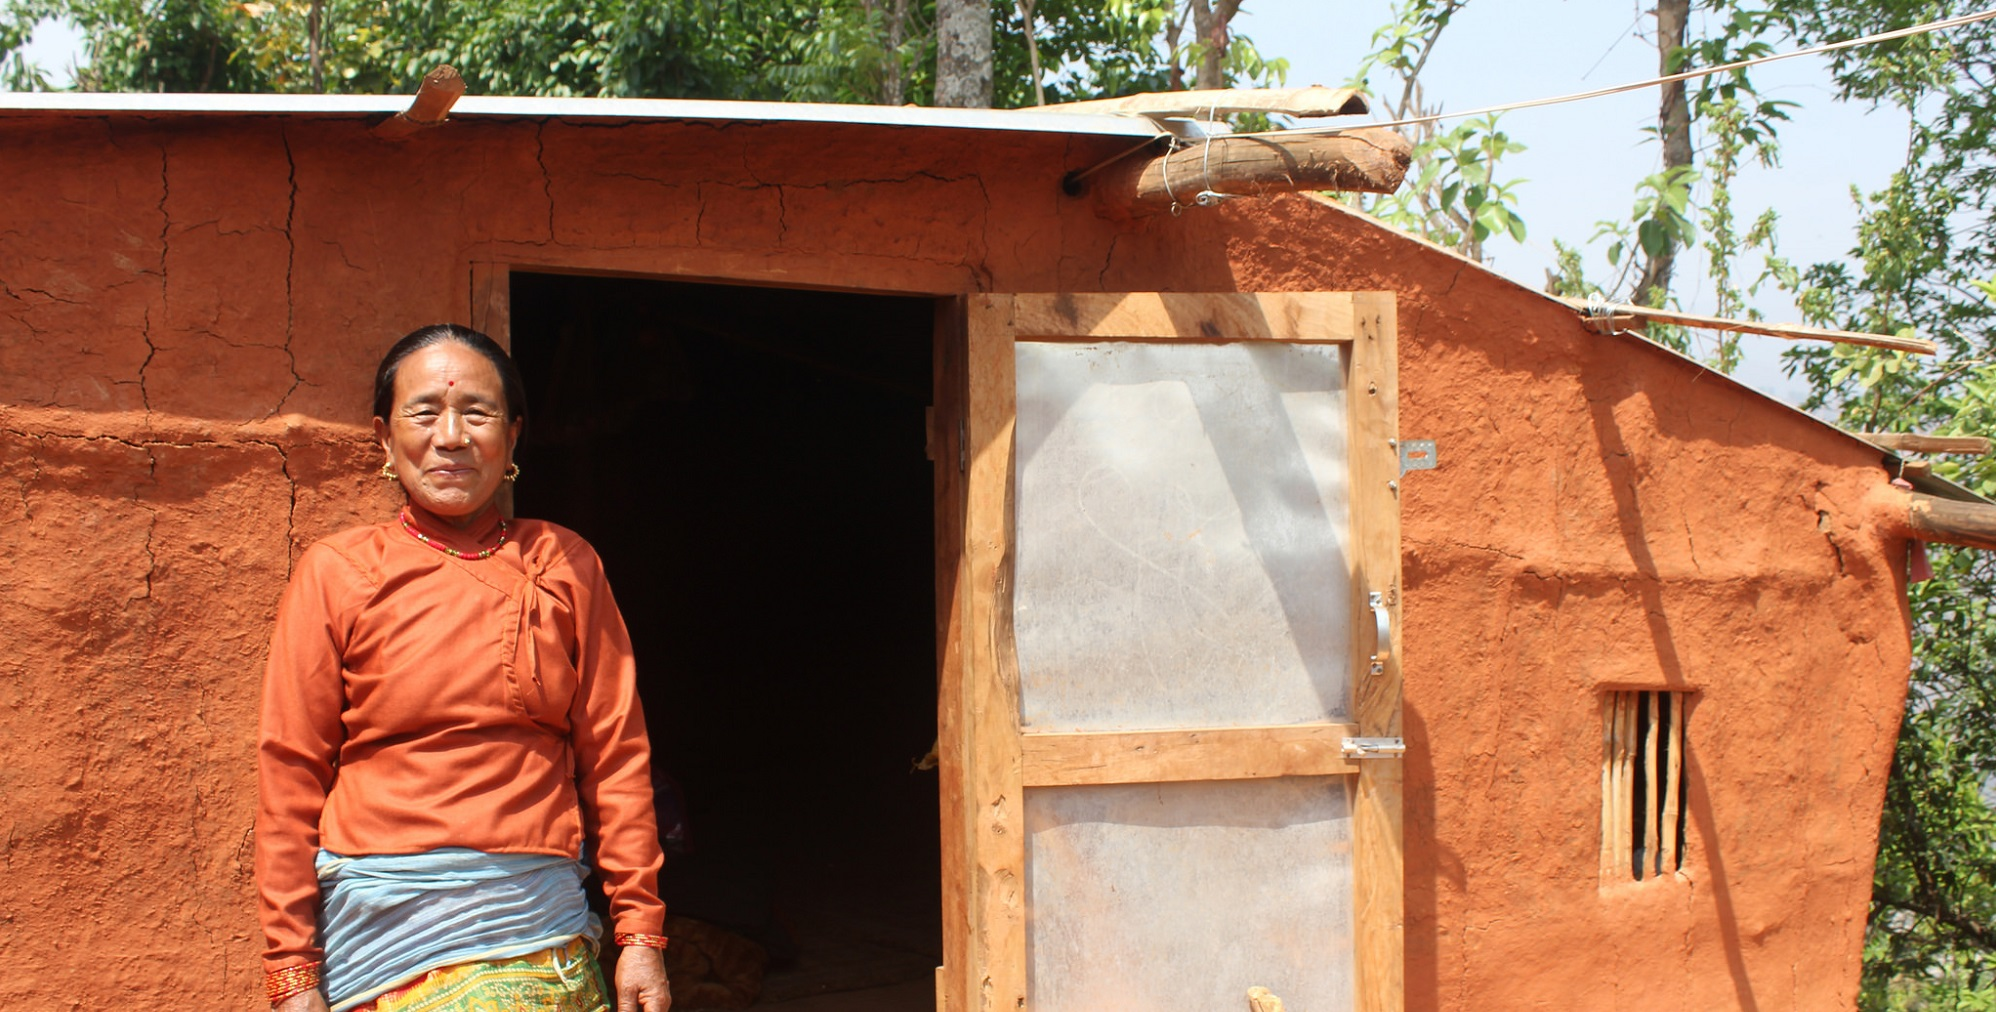 Kanchi's house collapsed in the earthquake, we helped her with materials for a temporary shelter (c) Judith Escribano/Age International